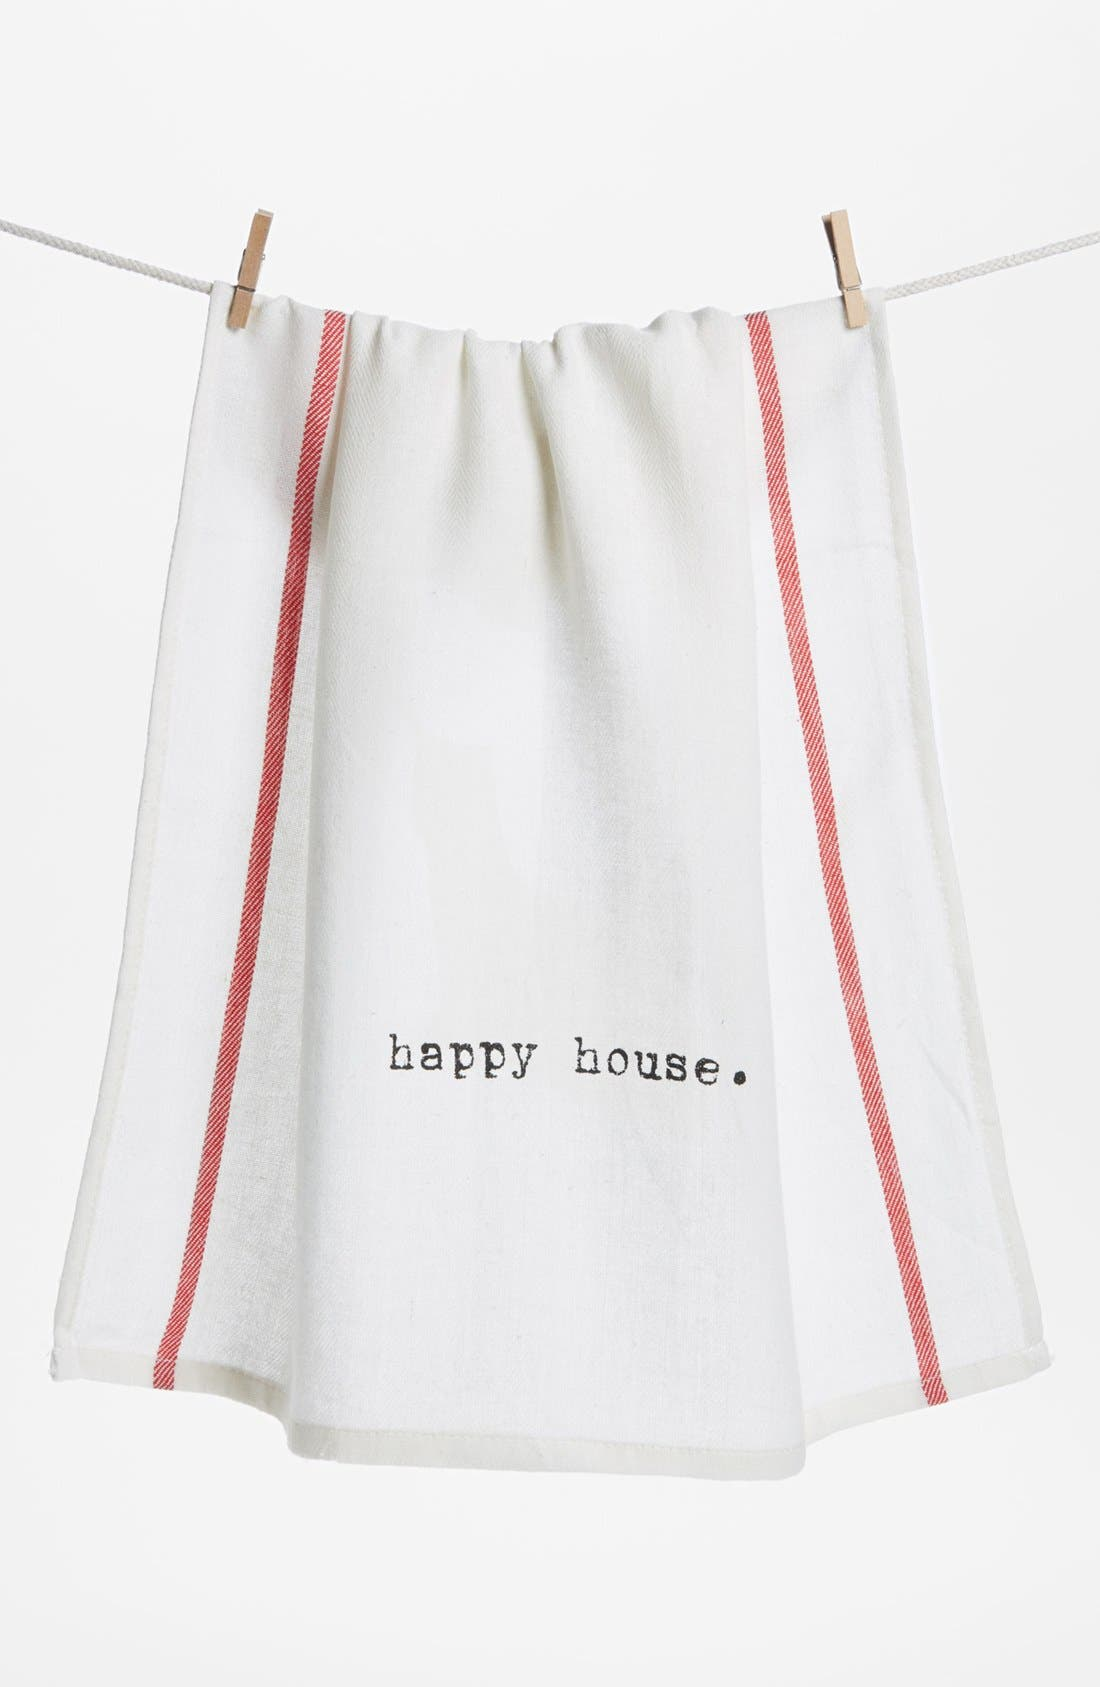 Main Image - Second Nature by Hand 'Happy House' Towel